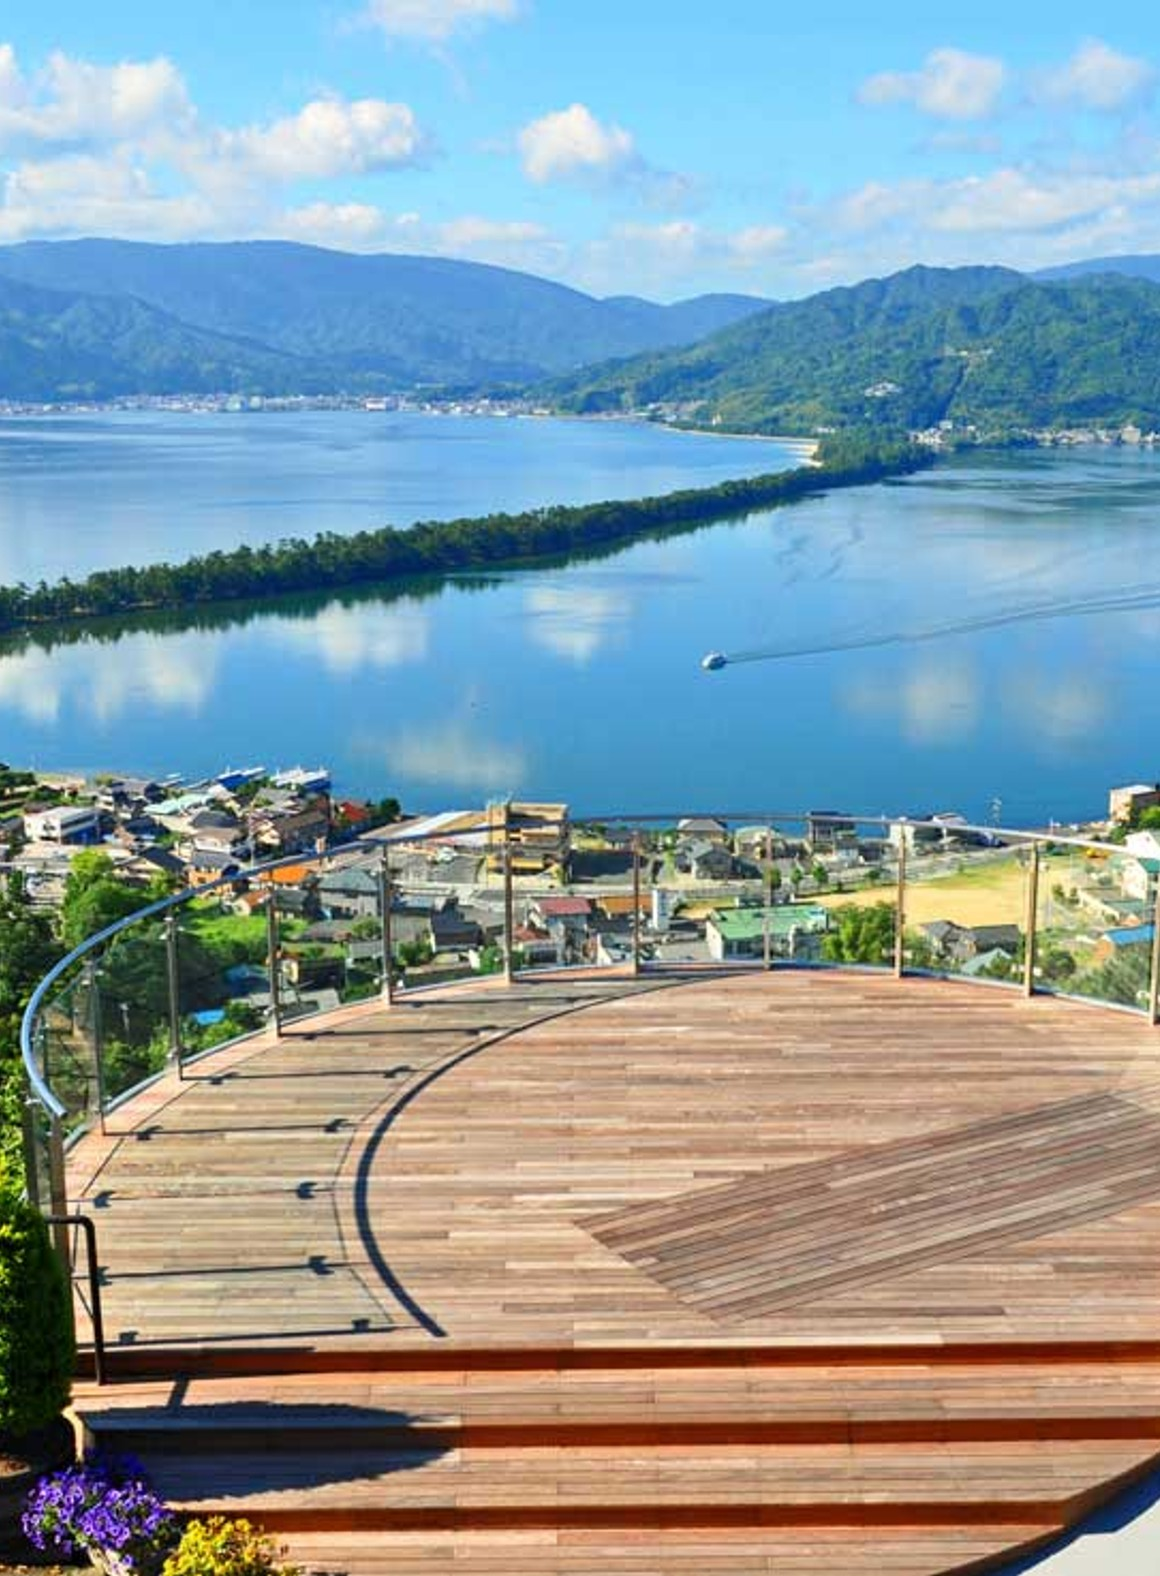 Go to Amanohashidate, one of the three most scenic spots in Japan, and Funaya in Ine!